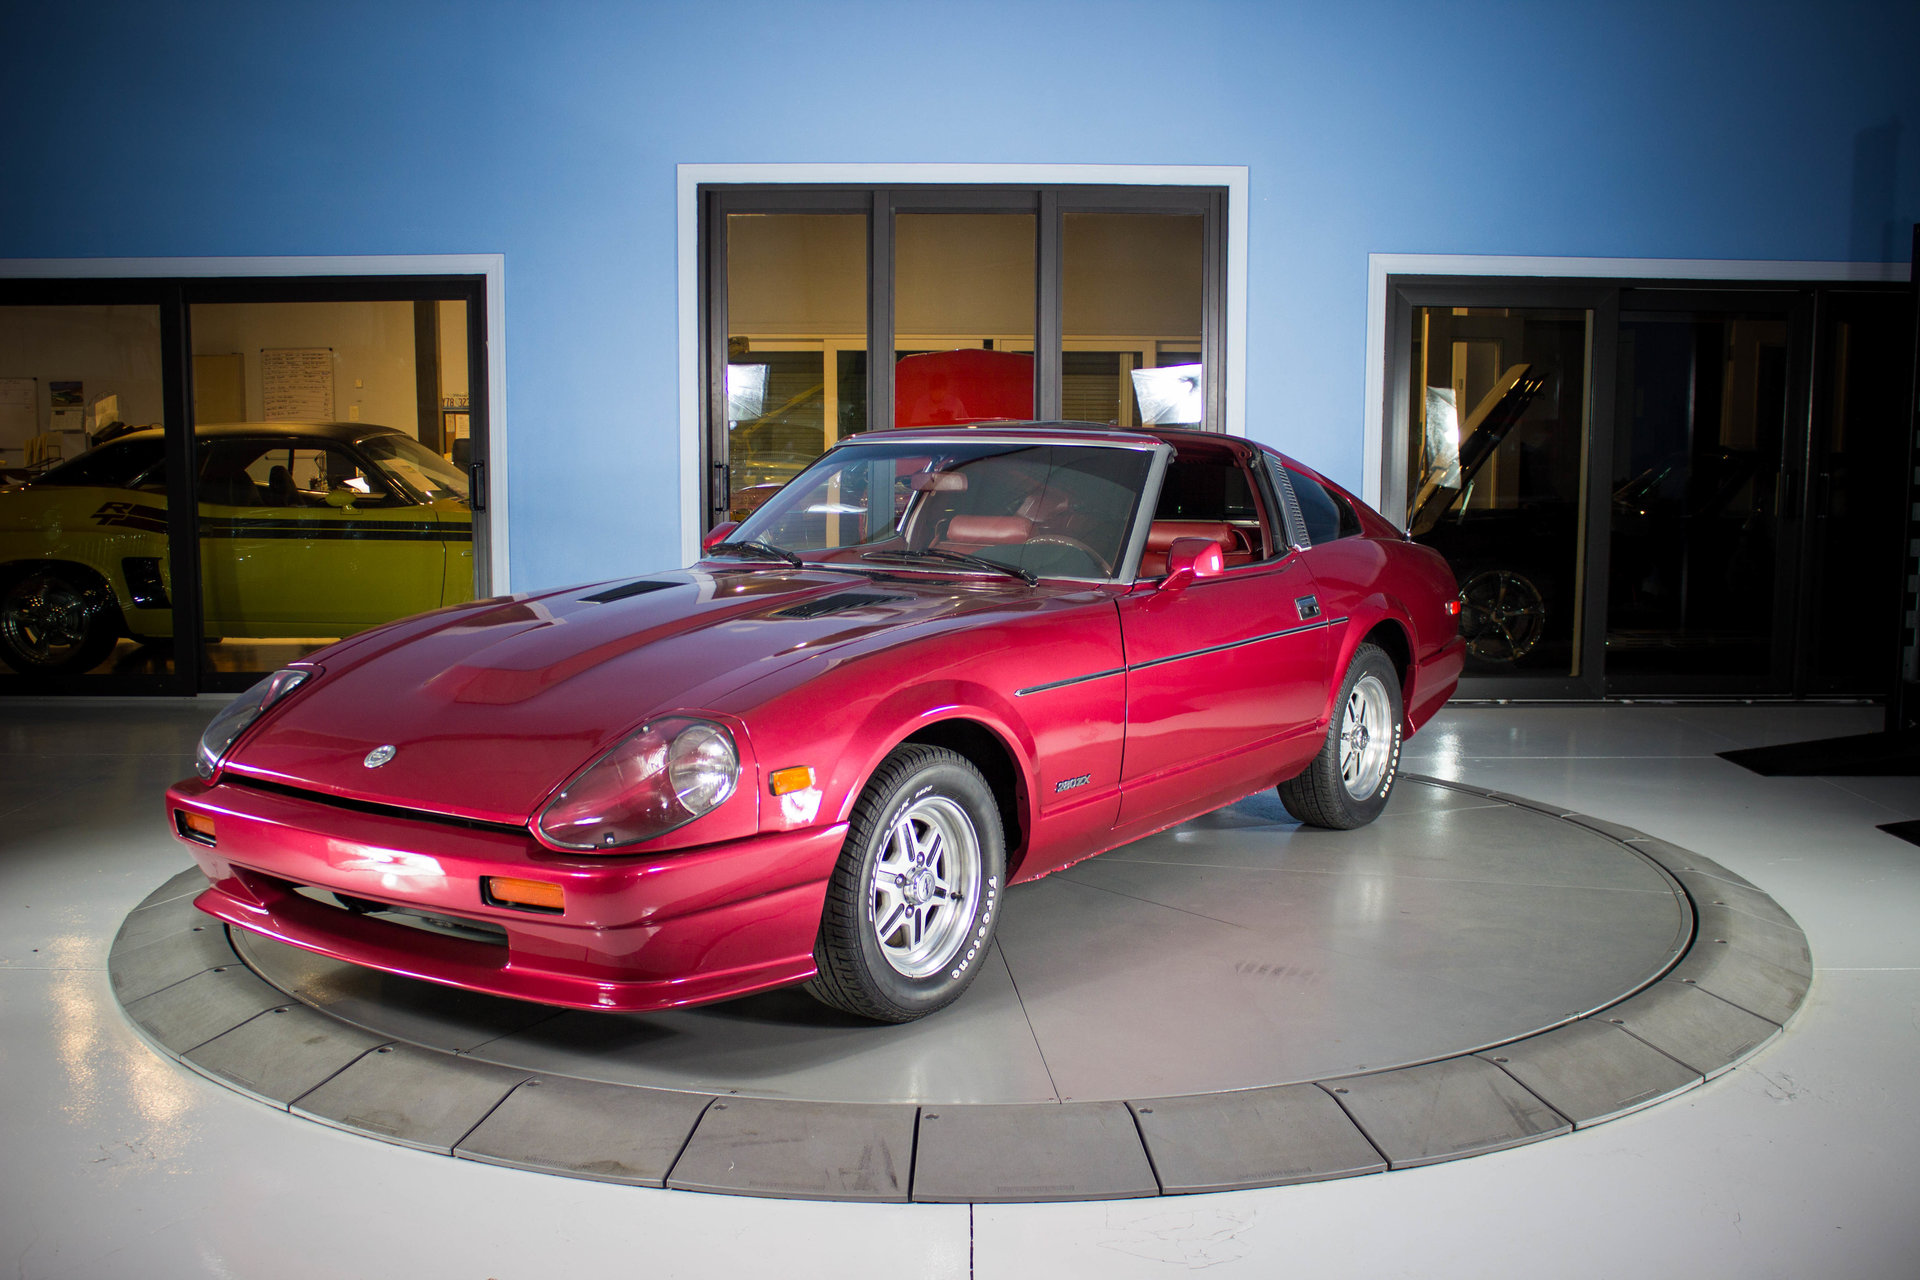 1981 datsun 280zx classic cars used cars for sale in tampa fl. Black Bedroom Furniture Sets. Home Design Ideas